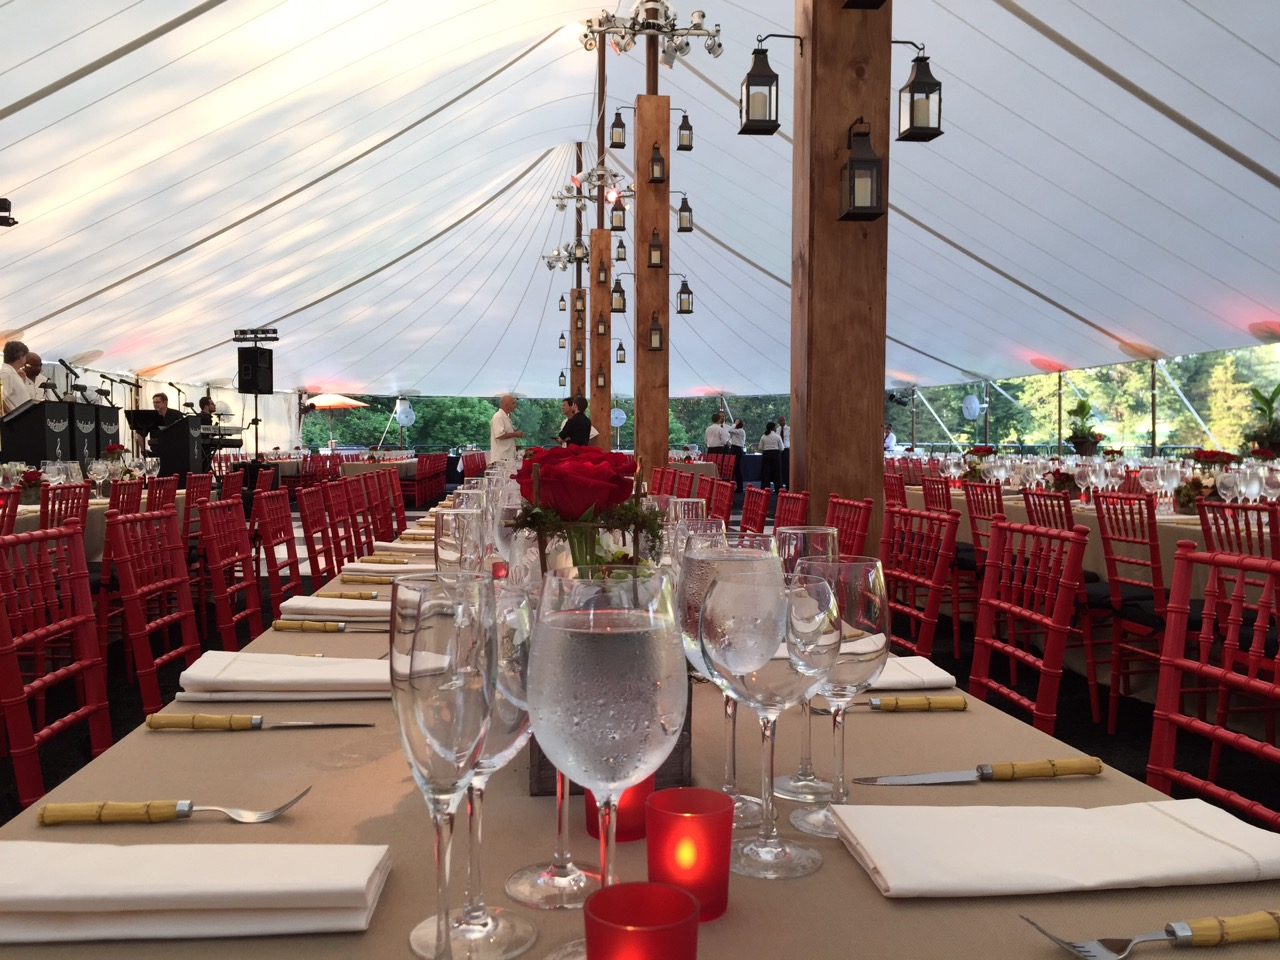 Custom tent pole surrounds with metal and glass lanterns